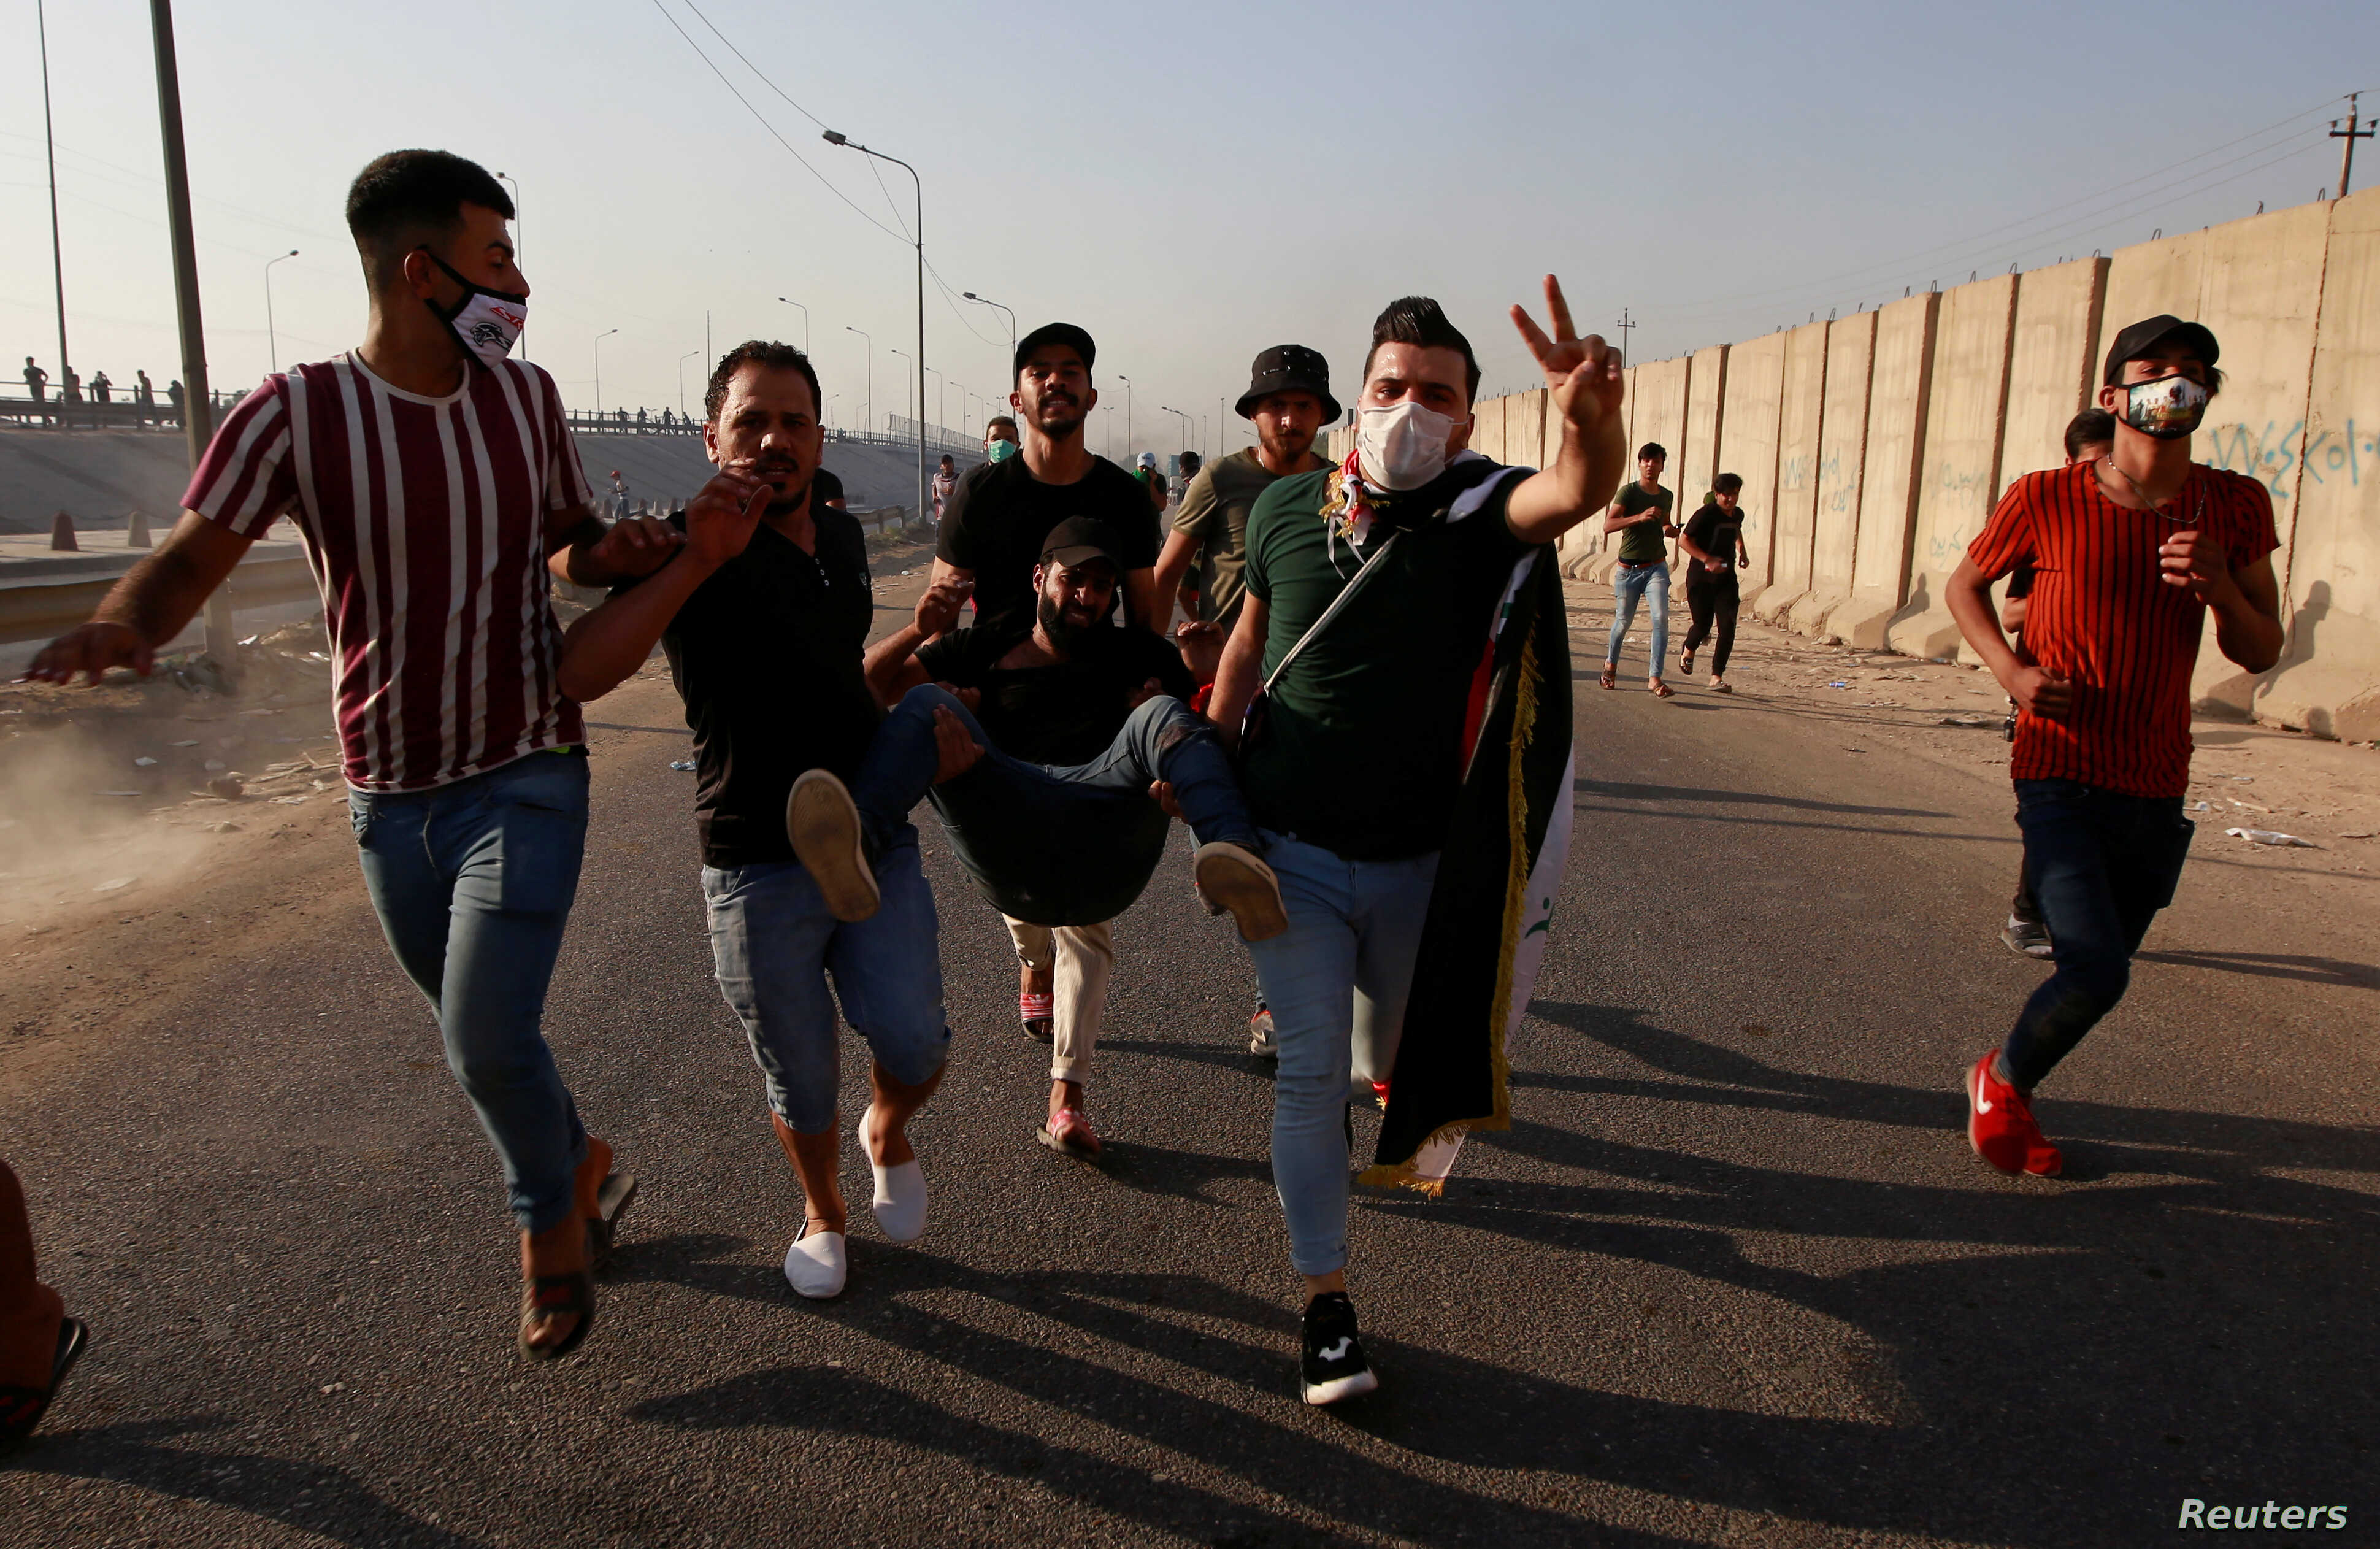 Men carry an injured demonstrator during a nationwide anti-government protests in Baghdad, Iraq, Oct. 3, 2019.